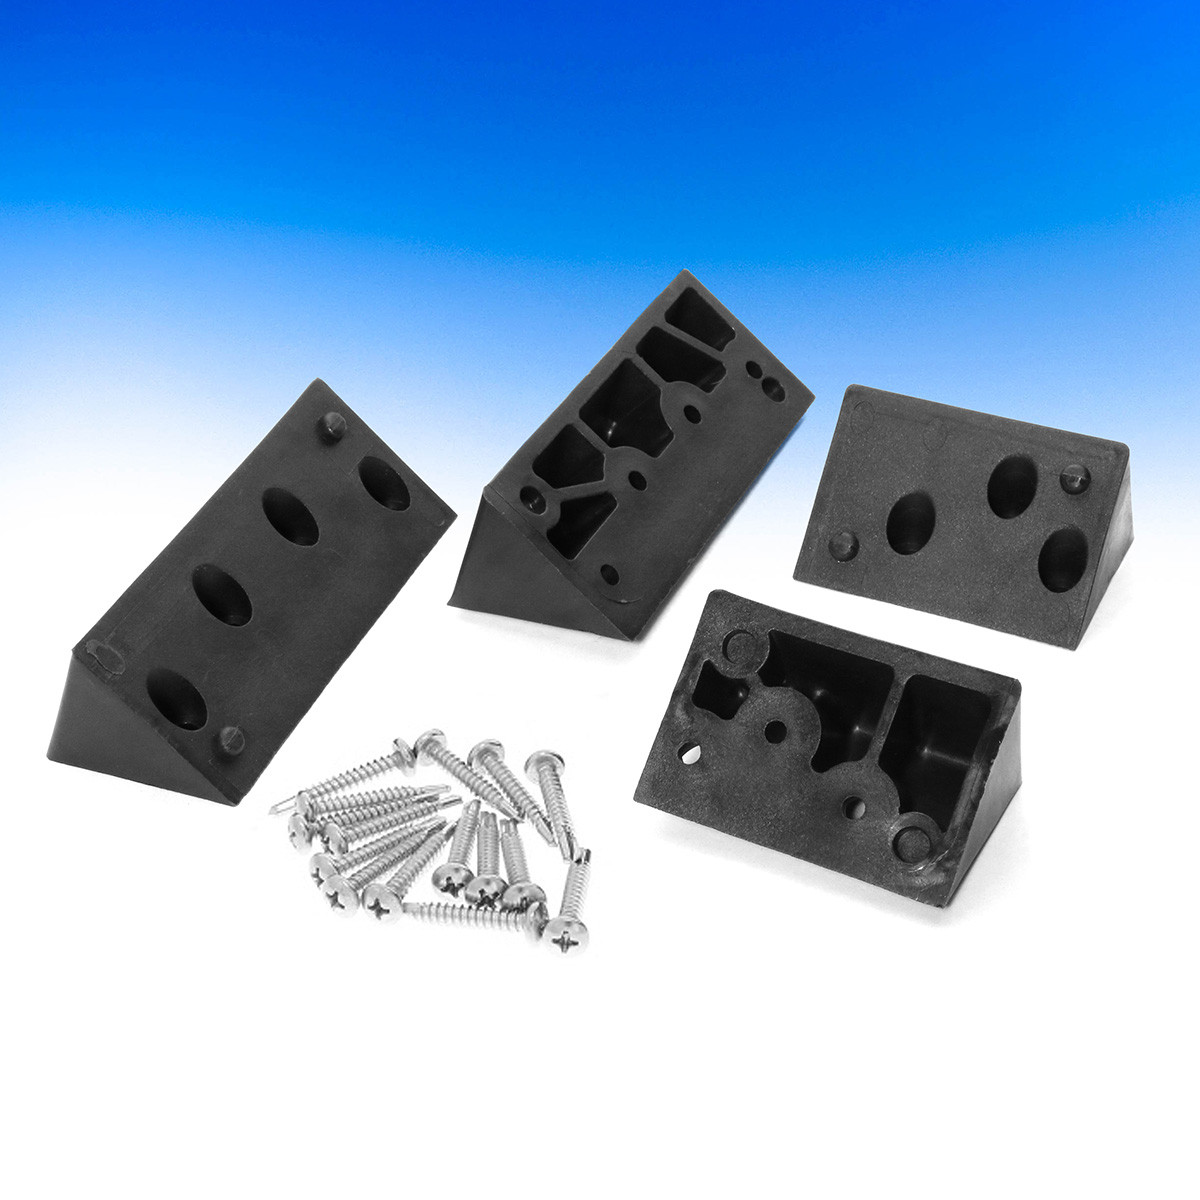 Lite 10 Angle Adapters by InvisiRail - Black 45°